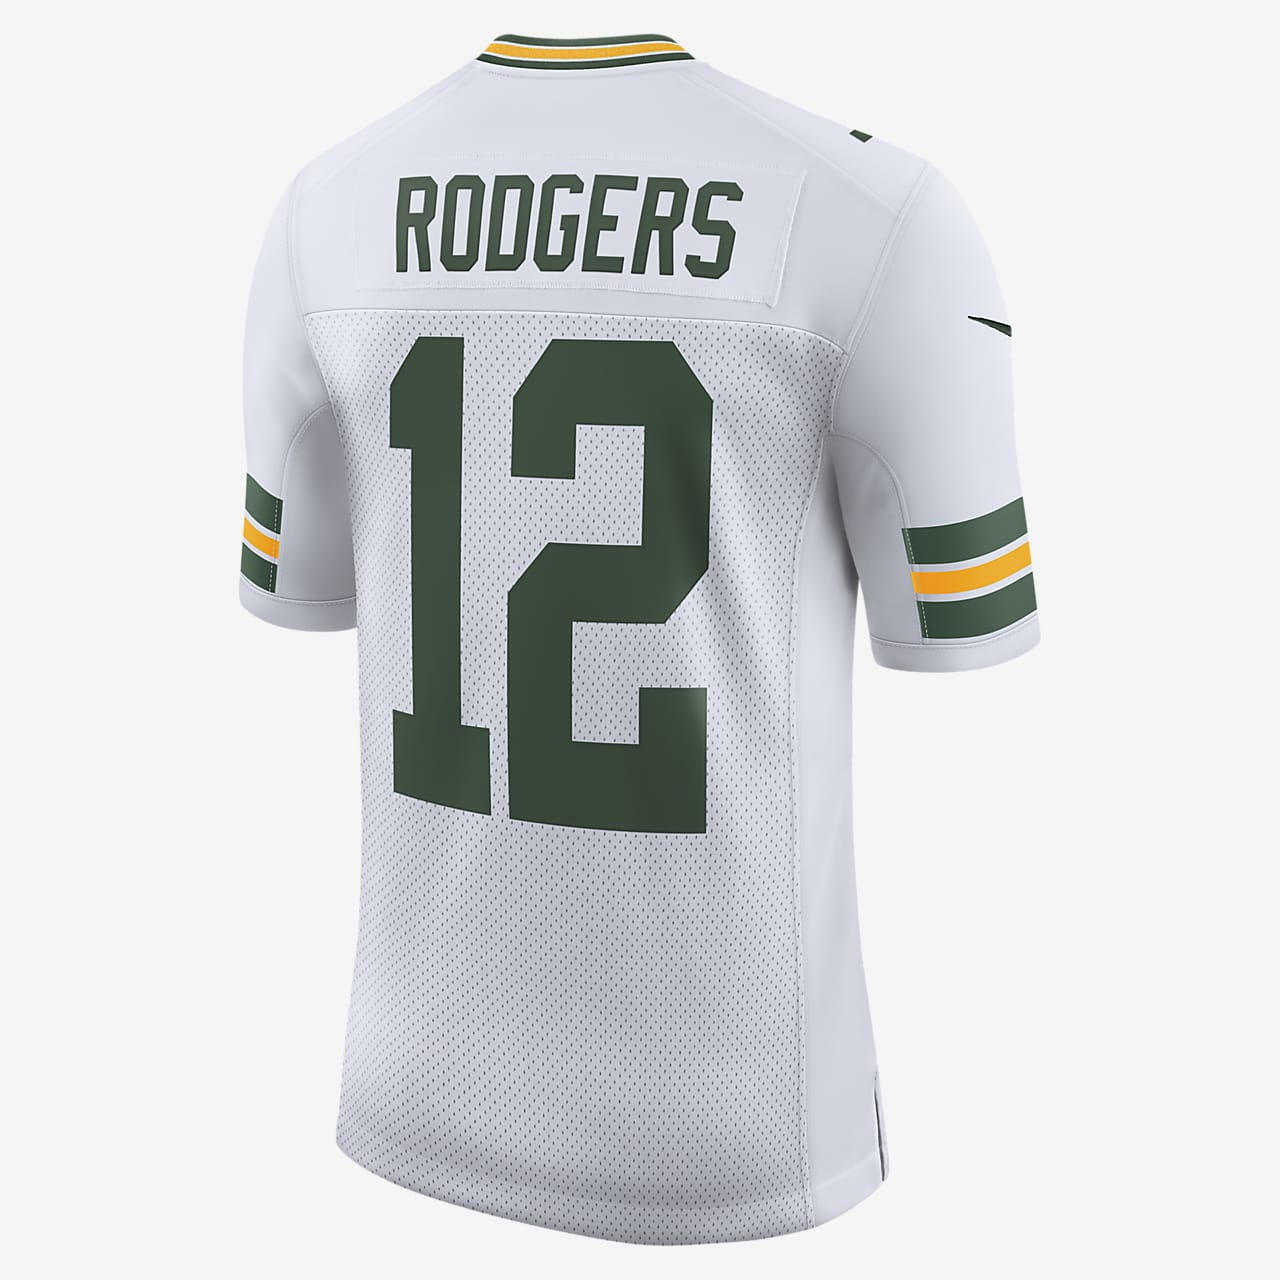 huge discount 28a3d 59788 NFL Green Bay Packers Limited (Aaron Rodgers) Men's Football Jersey